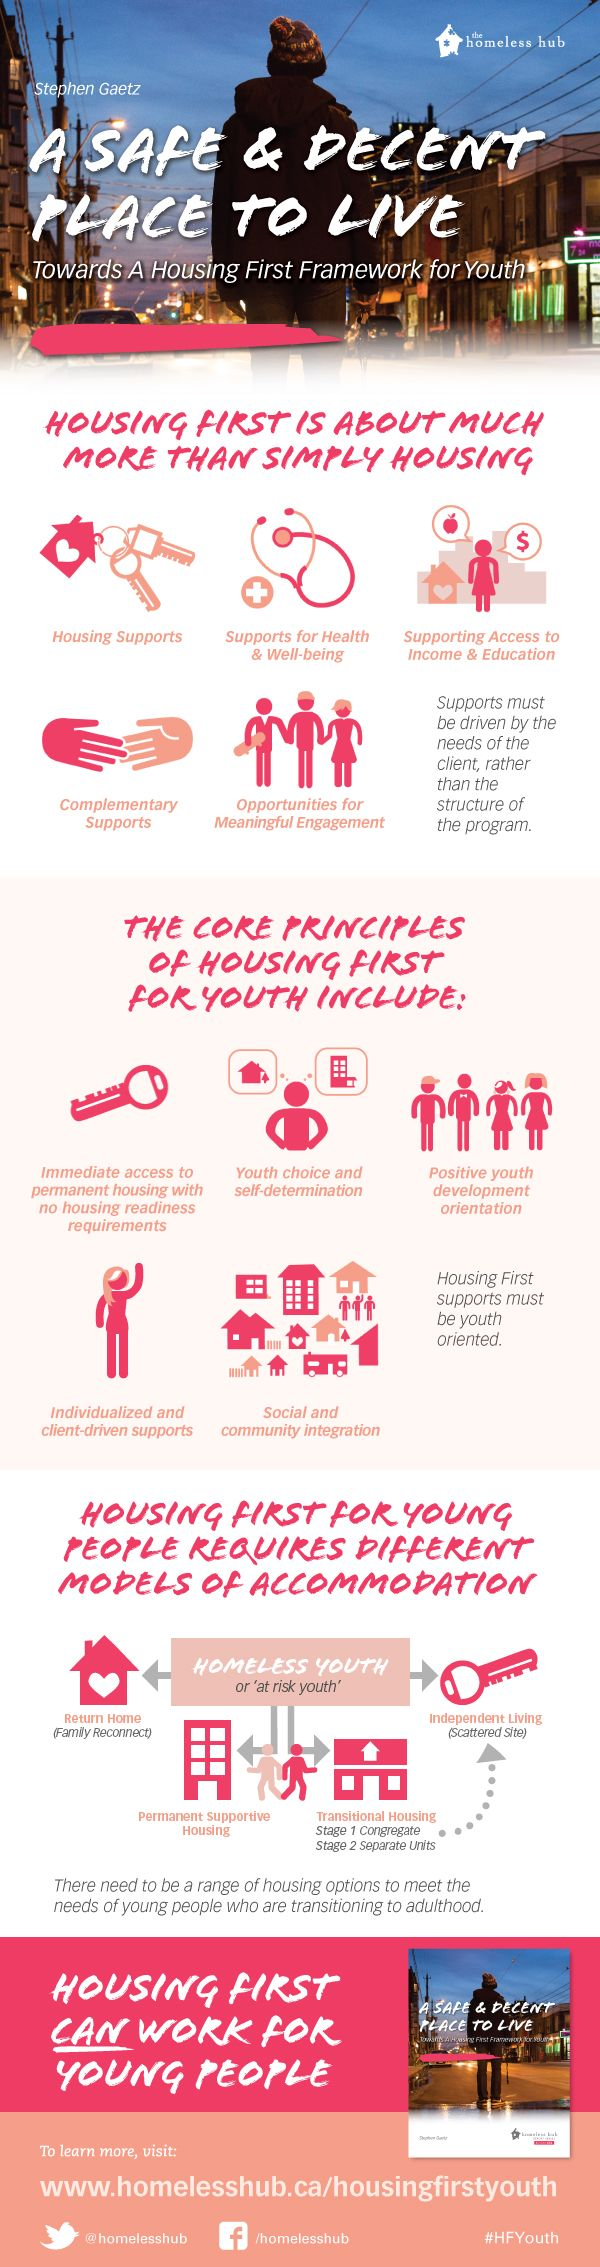 social policy on homelessness housing first Sdhc's homelessness action plan, housing first – san diego: 2018-2020,  directs $797 million over three fiscal years to six programs to create permanent.